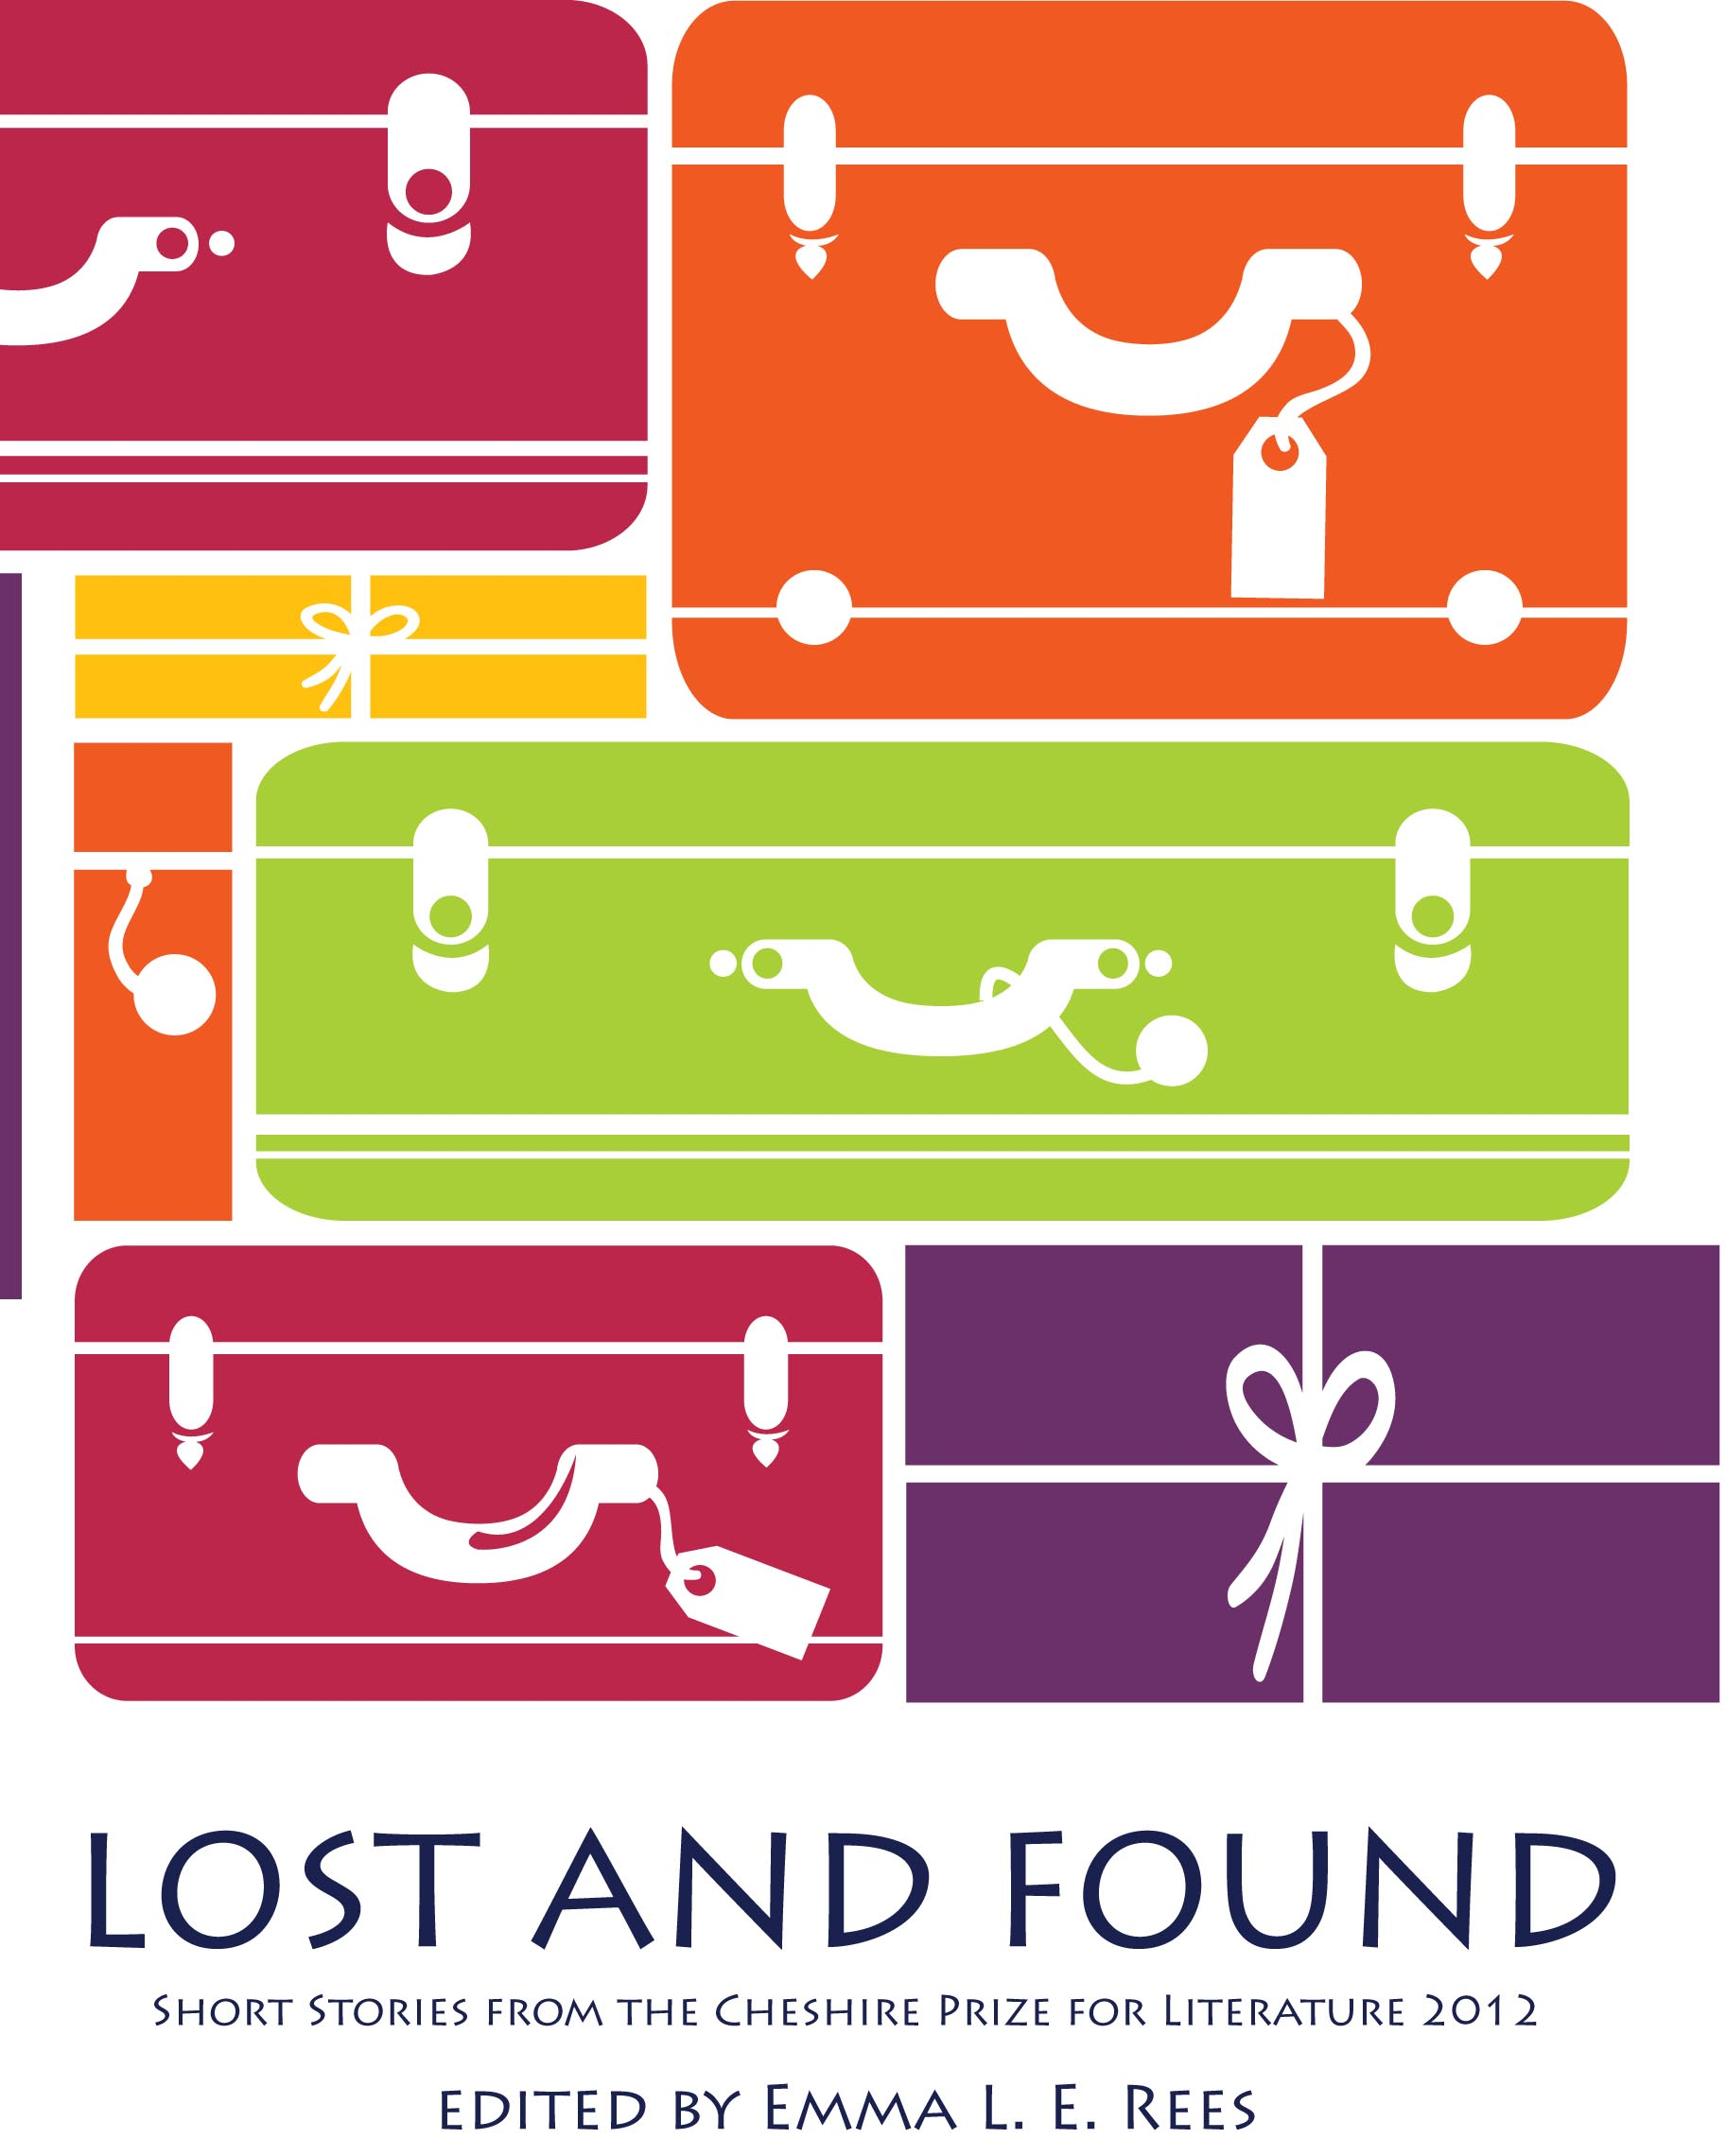 Lost and Found: Short Stories from the Cheshire Prize for Literature 2012